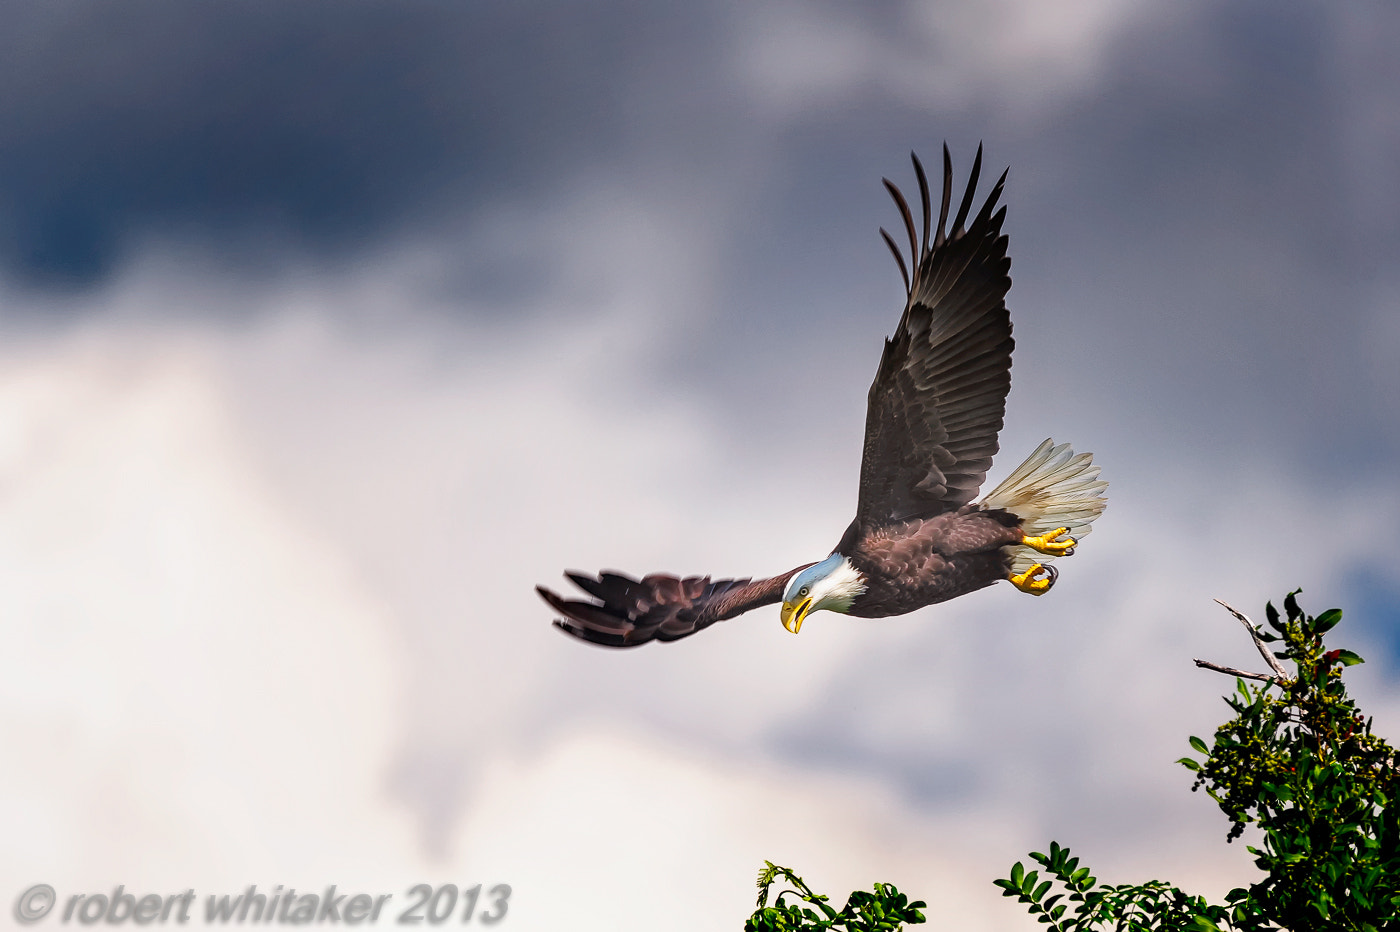 Photograph Bald Eagle in flight by Robert Whitaker on 500px